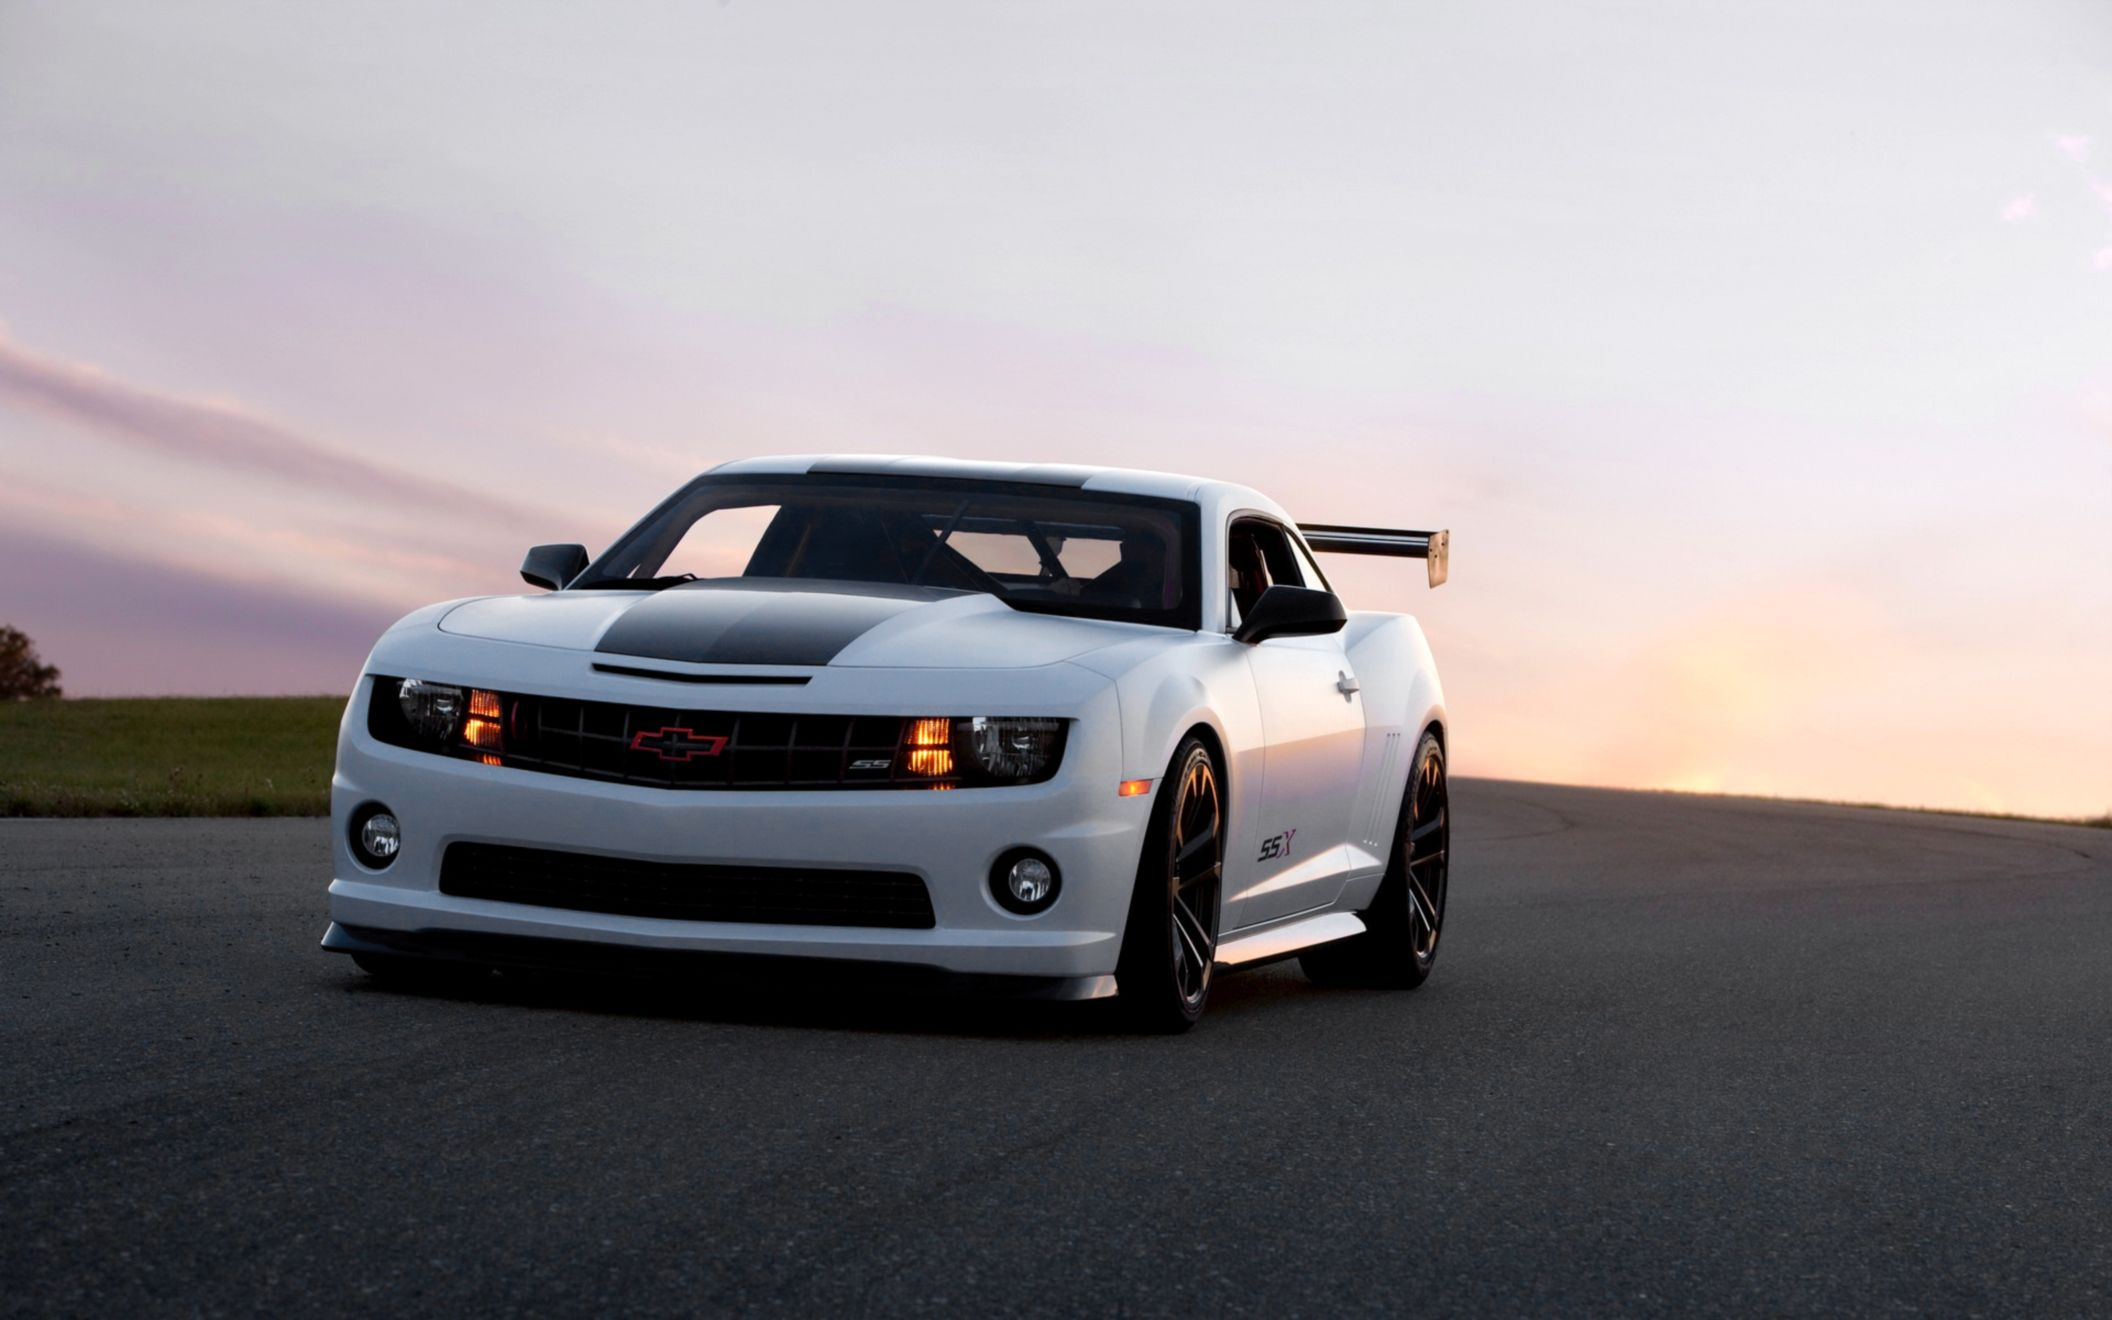 Download free HD Chevrolet Camaro Ssx Wide Wallpaper, image